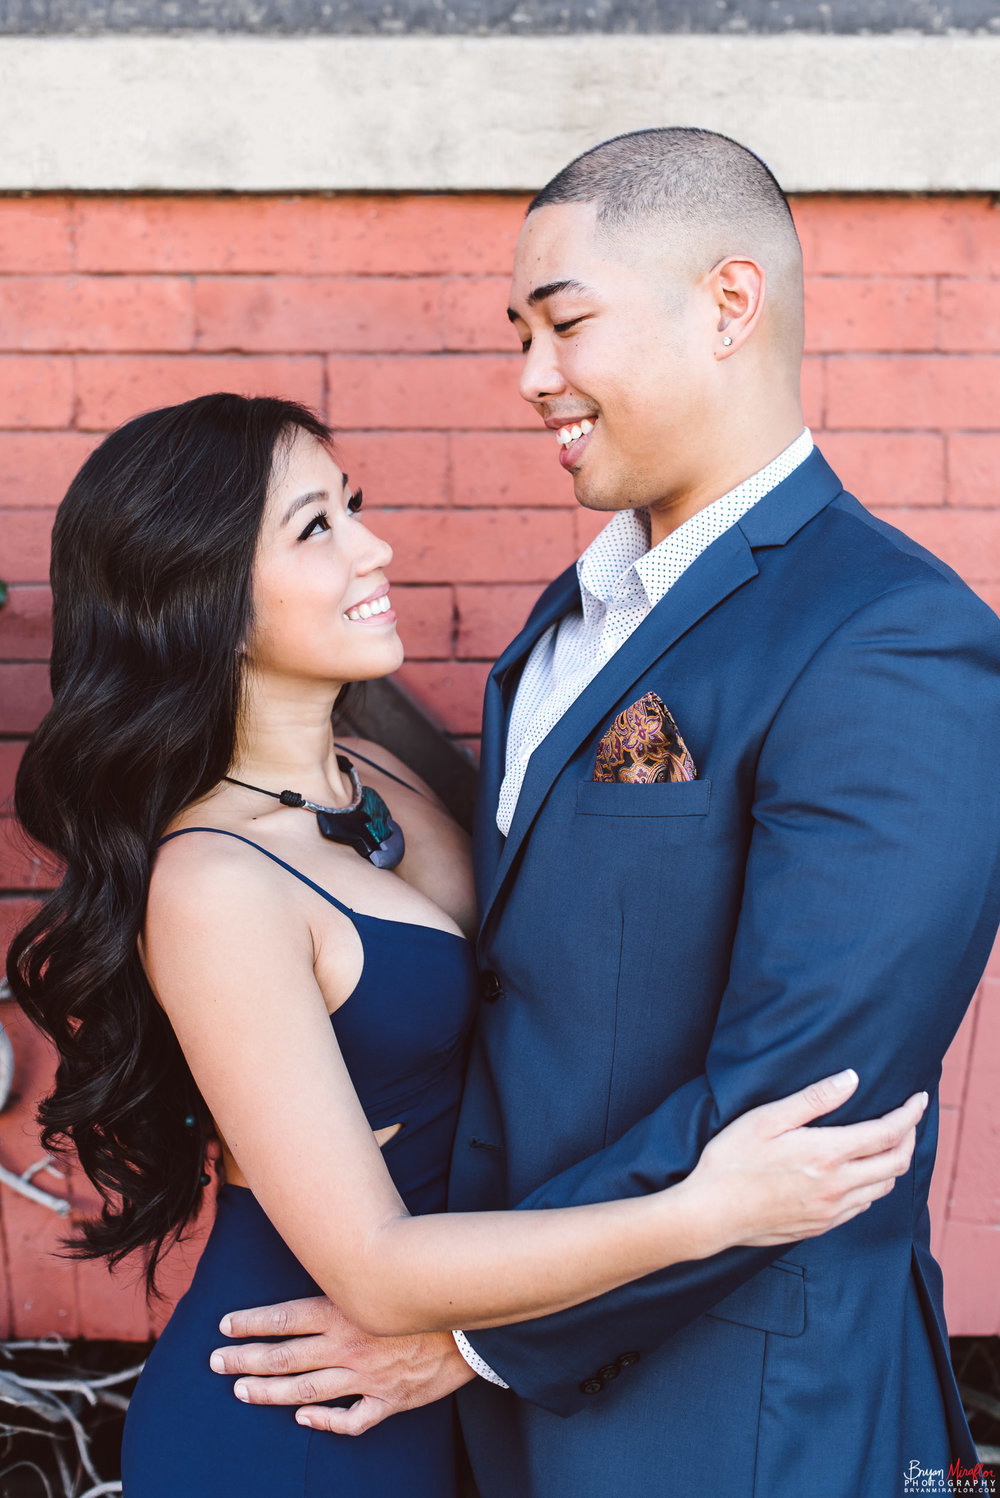 Bryan-Miraflor-Photography-Trisha-Dexter-Lopez-Engagement-Formal-DTLA-Arts-20170129-0001-Edit.jpg